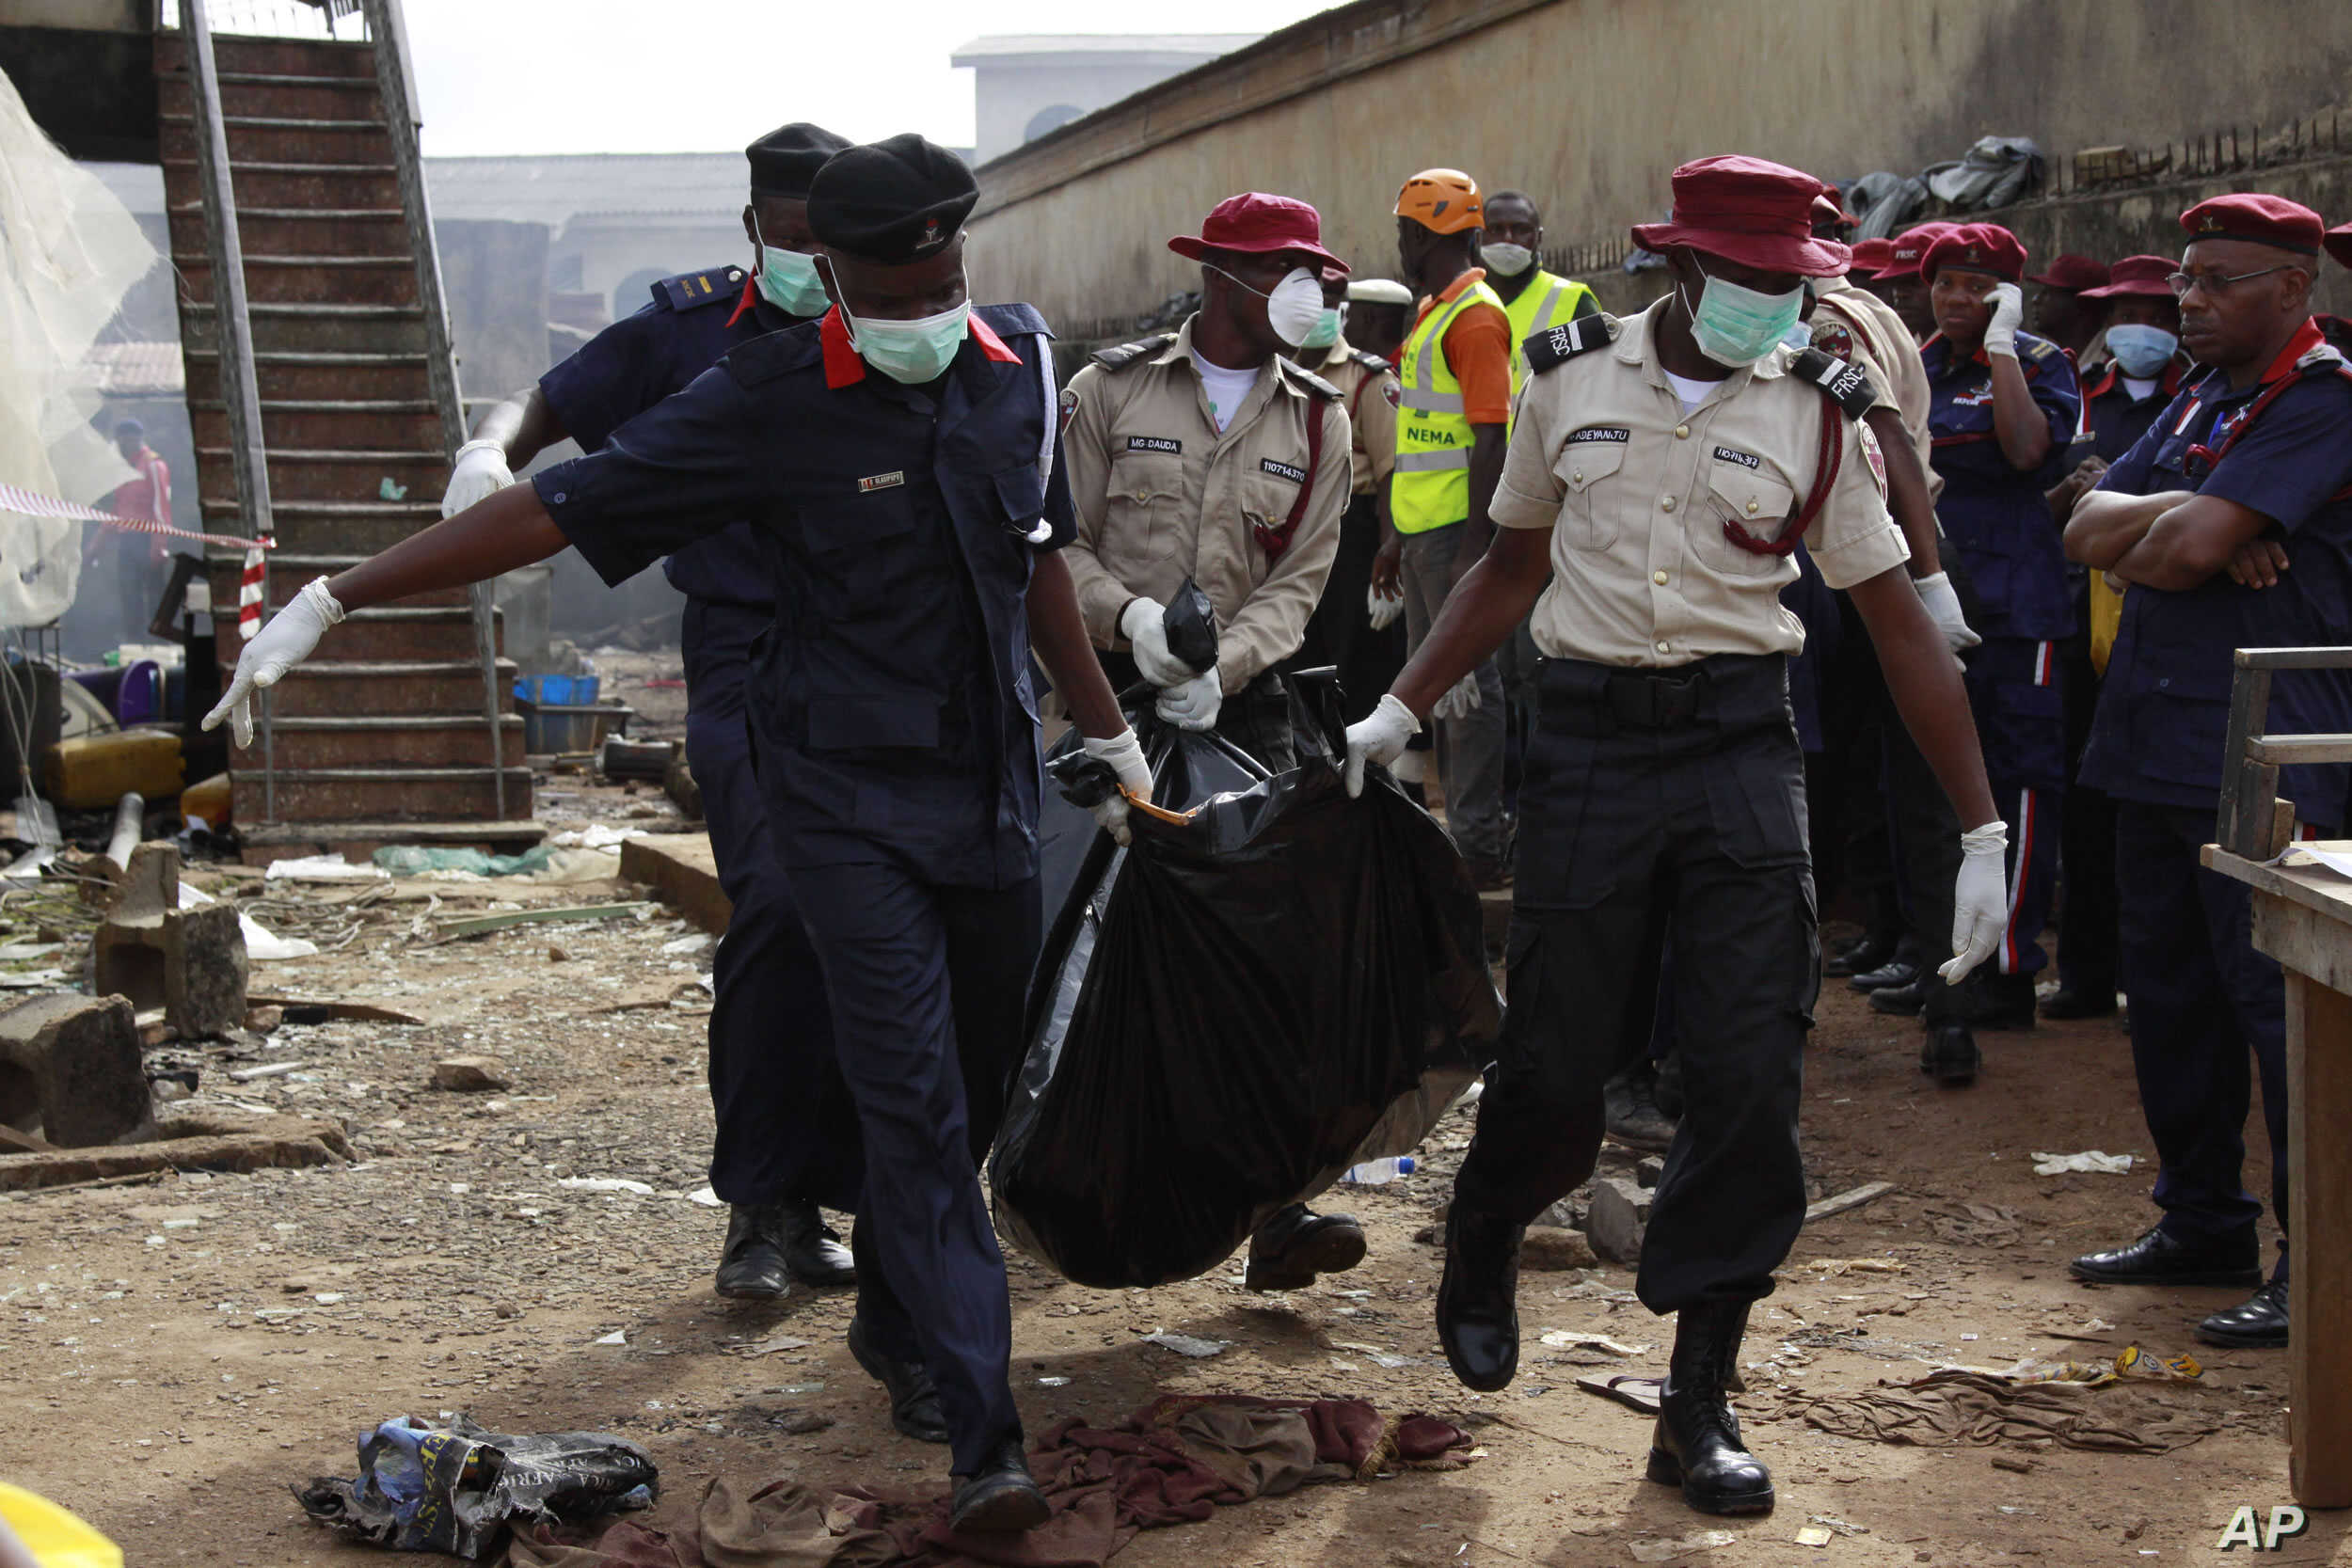 Rescue workers carry bodies at the site of a plane crash in Lagos, Nigeria, June 4, 2012.